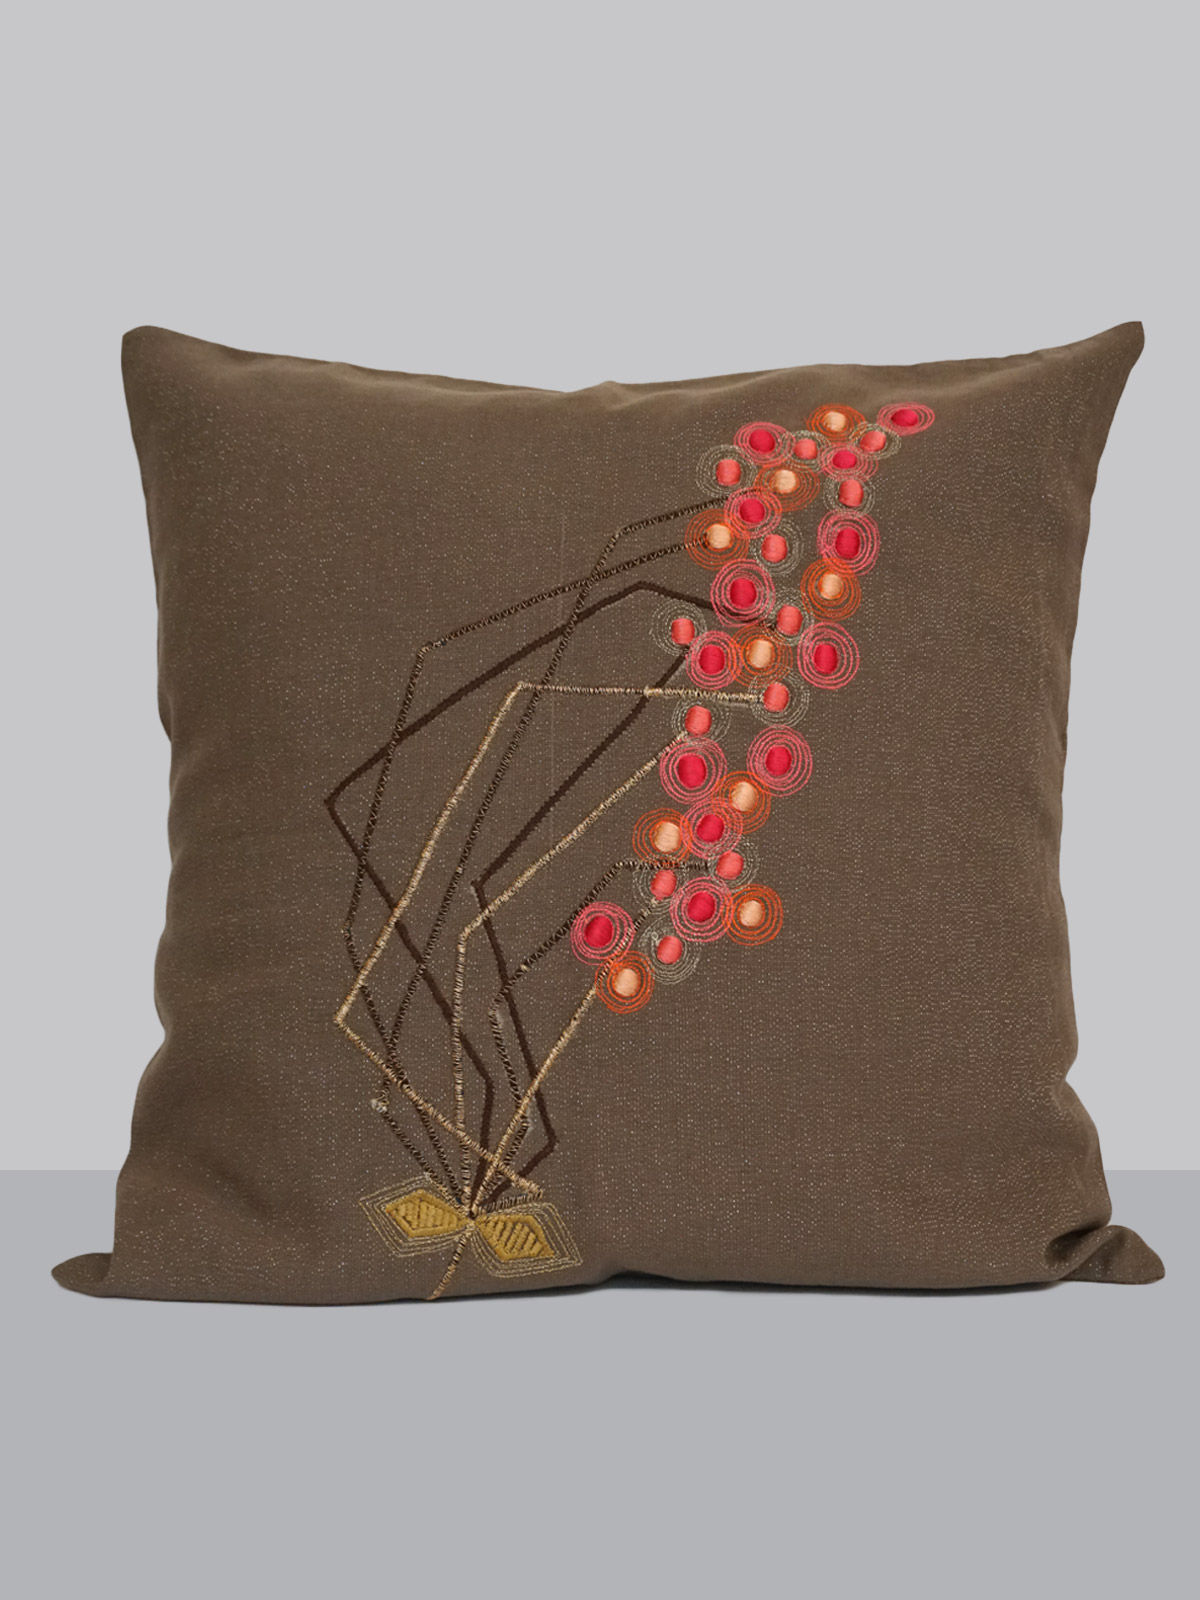 Grey cotton embroided floral pattern linen cushion cover